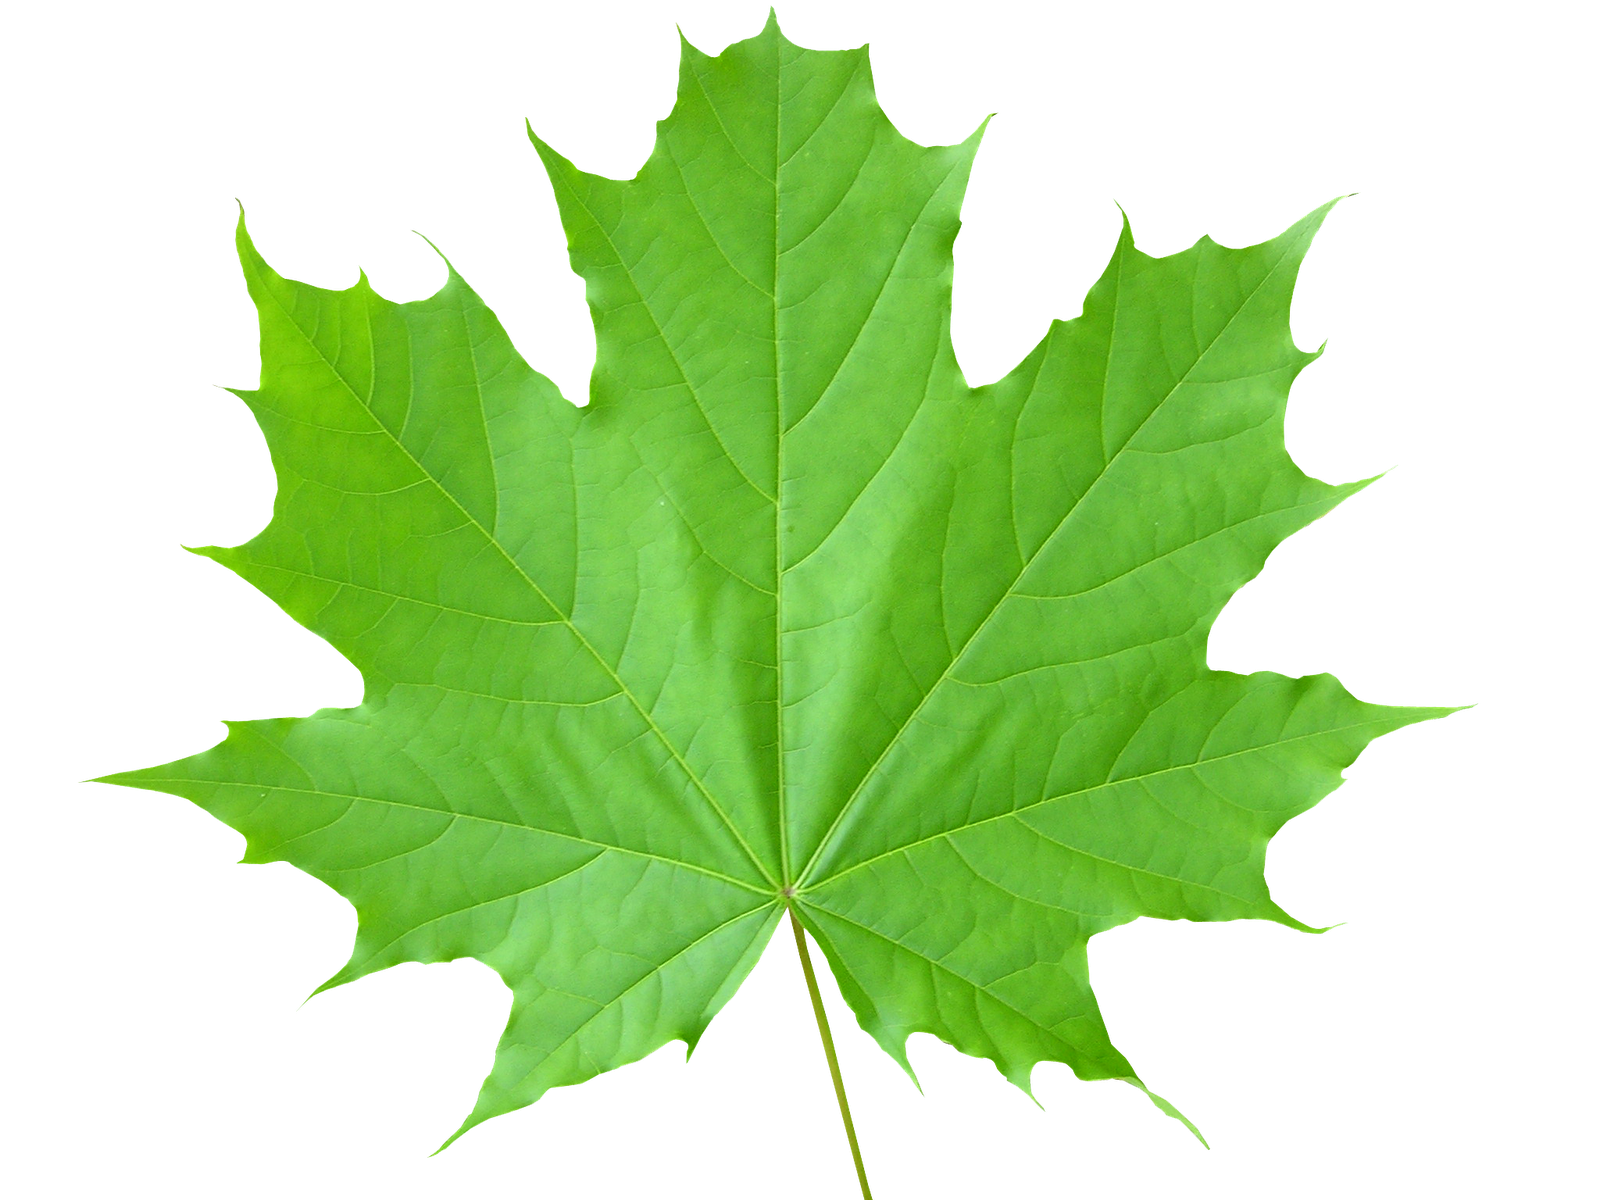 green leaves png image purepng free transparent cc0 png image